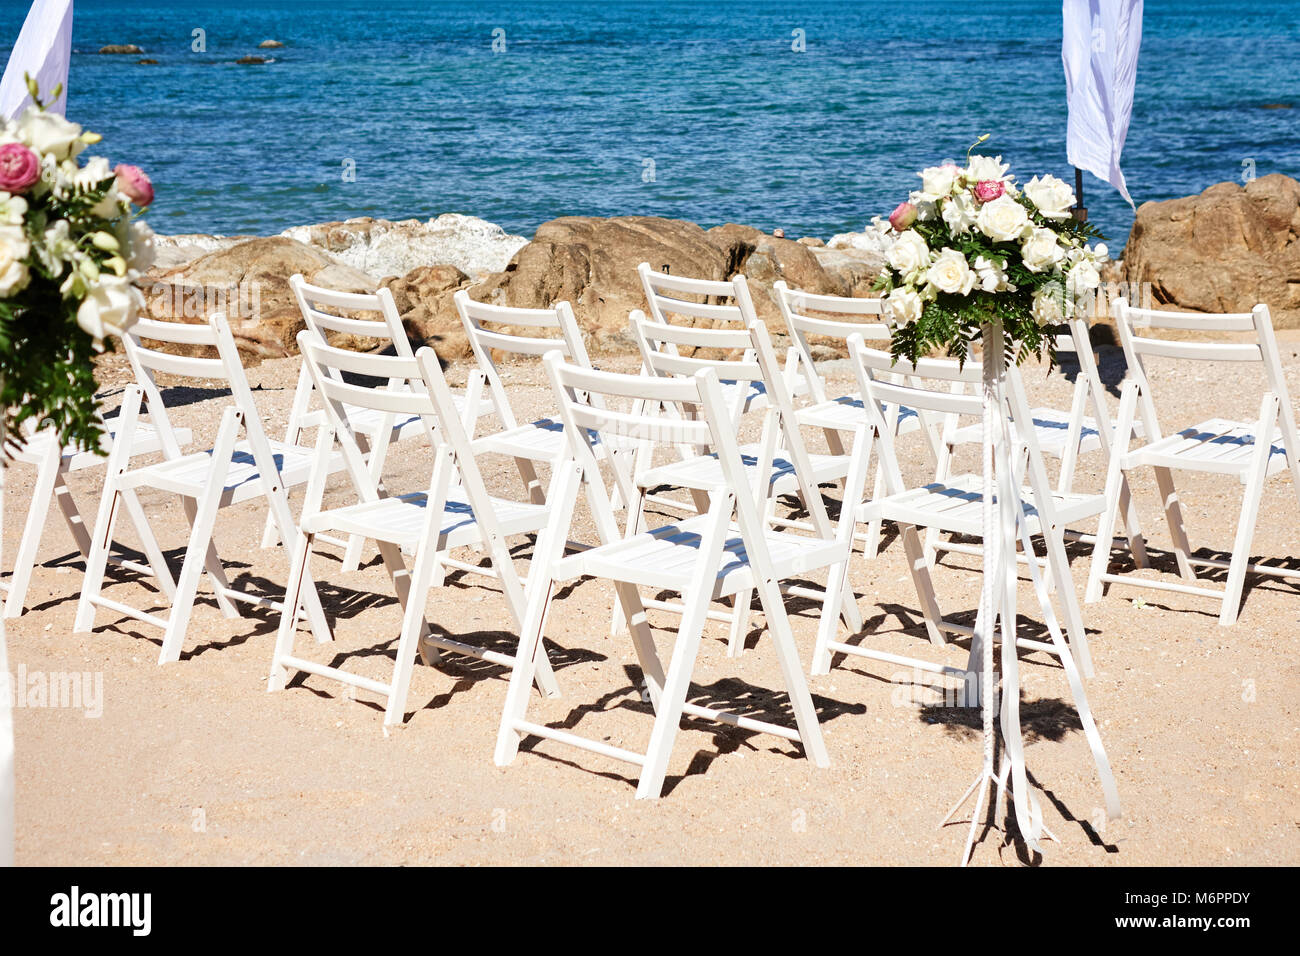 The Beach Wedding Venue Preparation Before Ceremony Flowers Floral Stock Photo Alamy